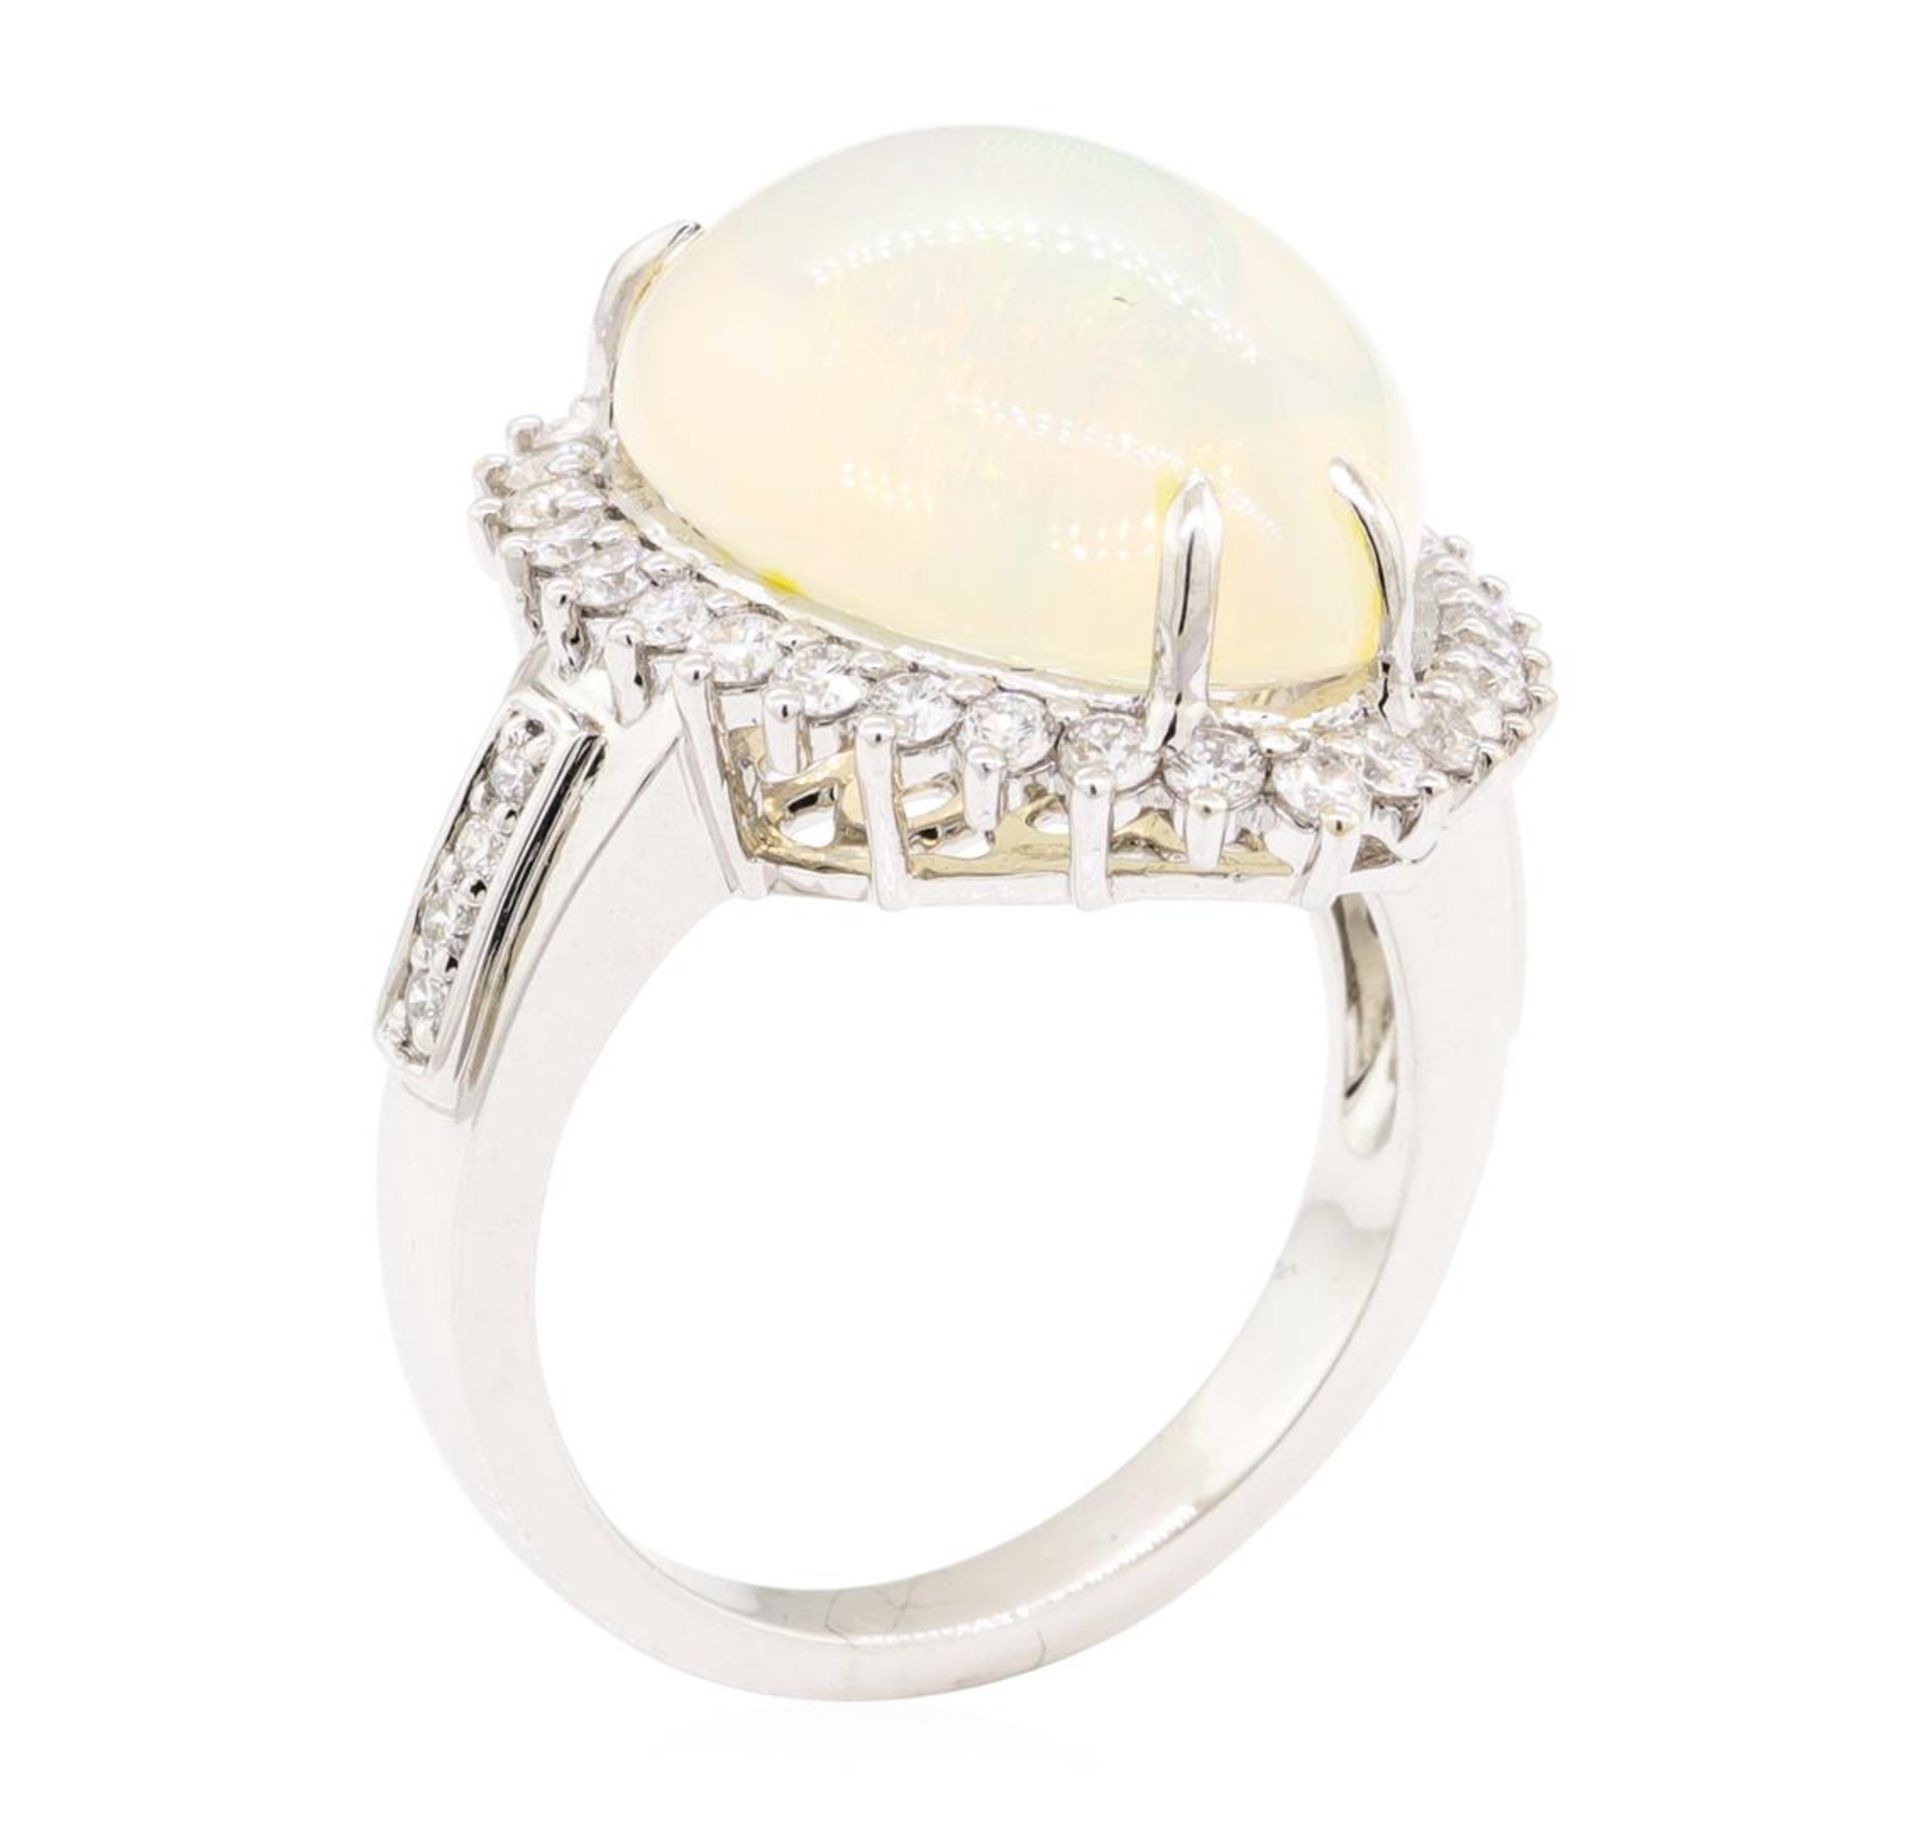 9.12 ctw Cabochon Pear Crystal Opal And Round Brilliant Cut Diamond Ring - 14KT - Image 4 of 5